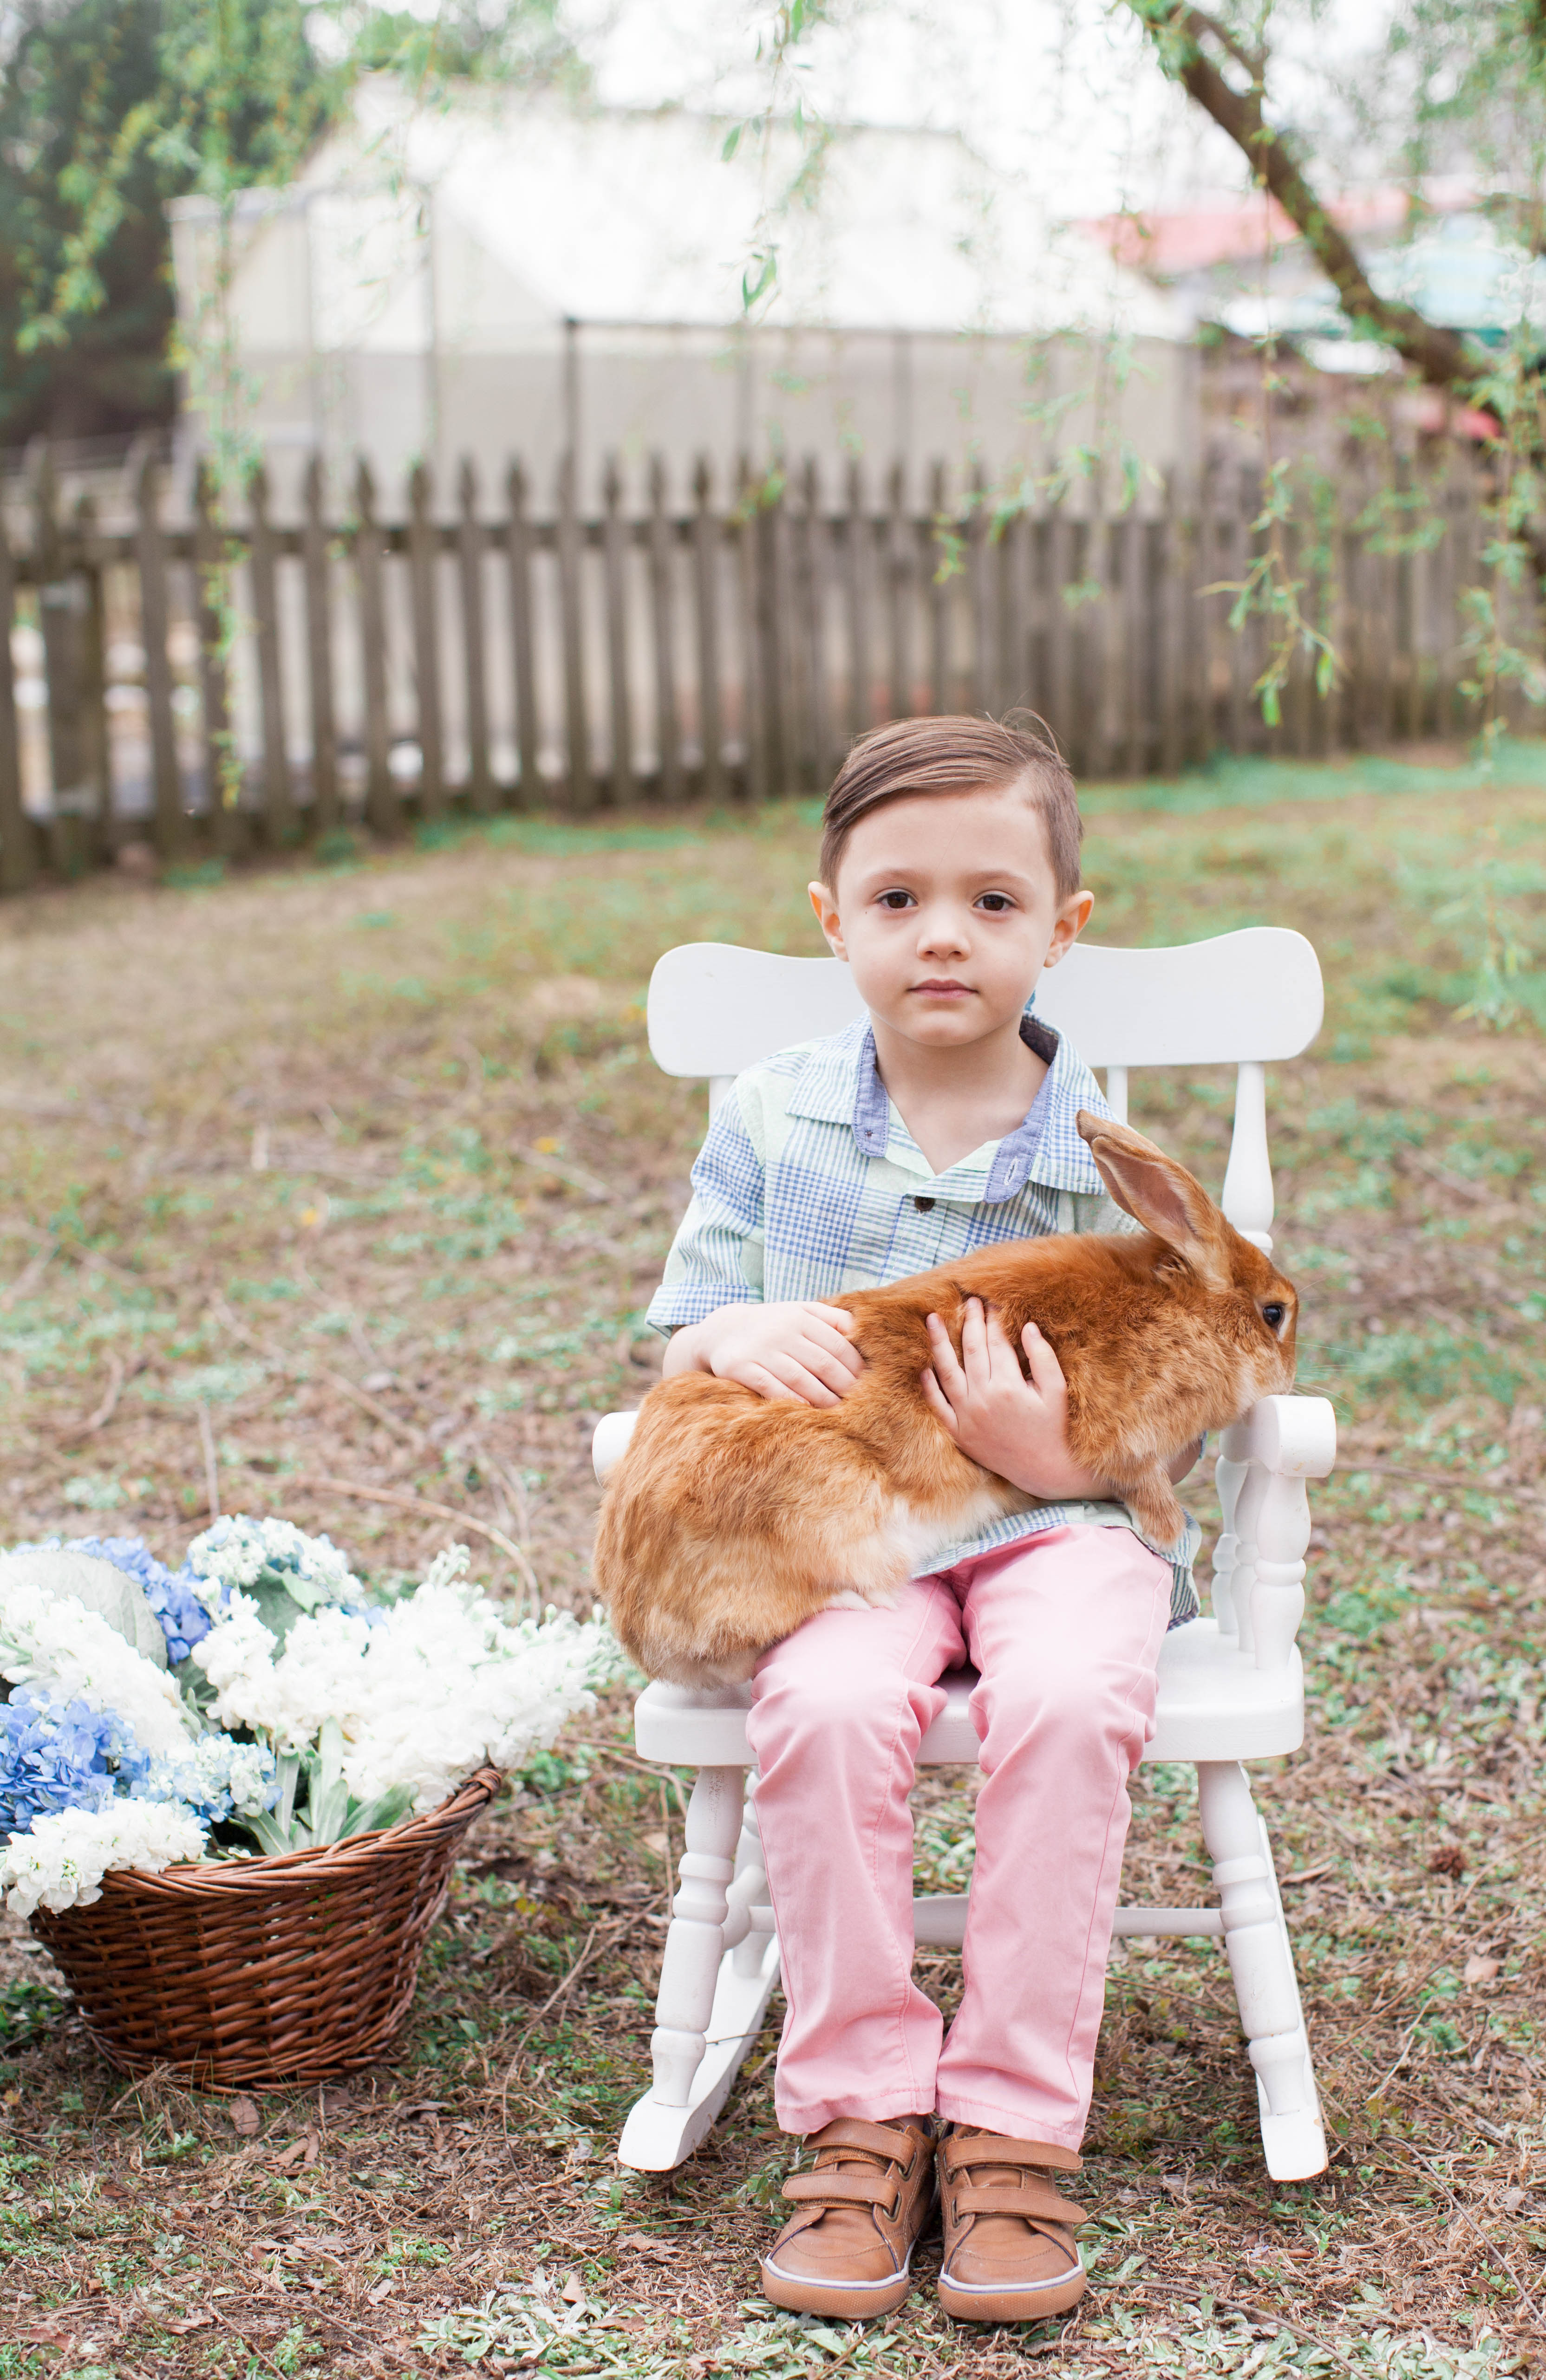 North Carolina fashion and lifestyle blogger and writer Jessica Linn in Valentine Fields Farm in Knightdale NC. Spring and Easter family photography by Hayley Gastiger a local North Carolina photographer. Spring childrens photo with bunny.